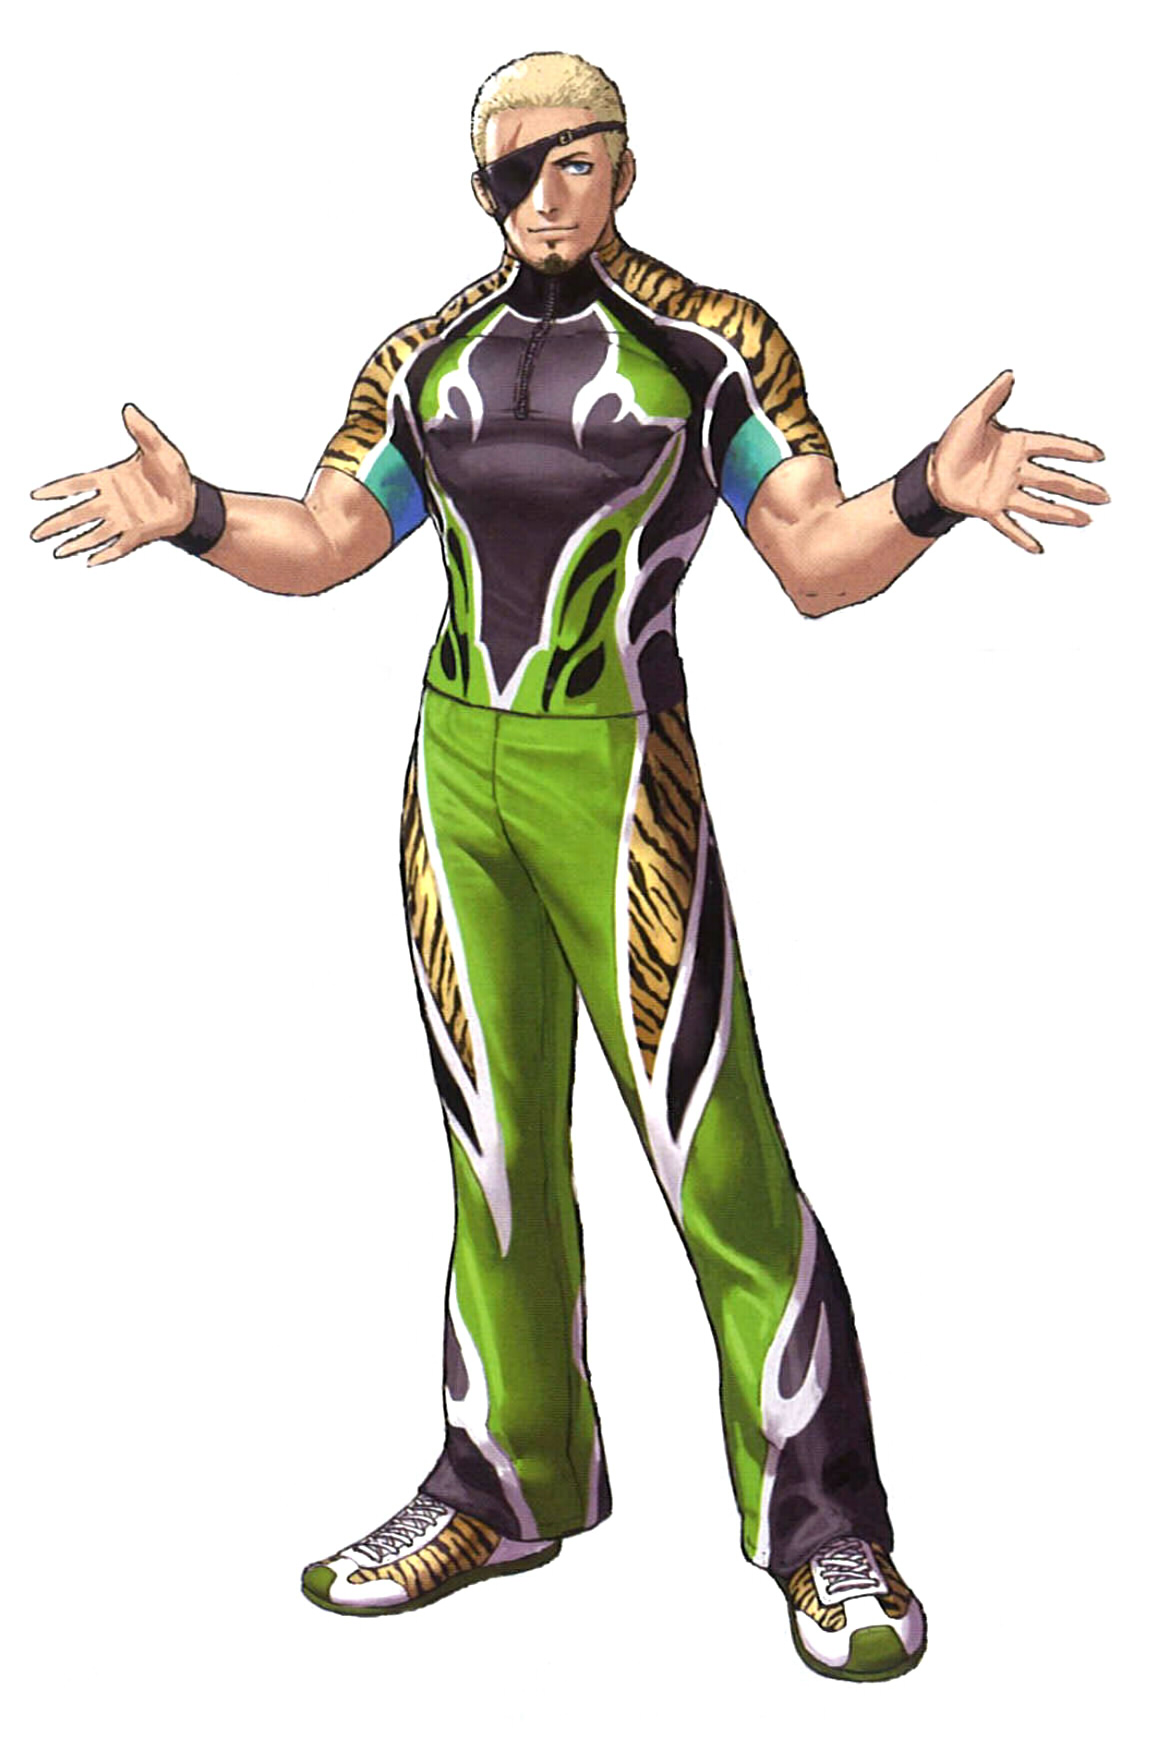 Ramon (The King of Fighters)